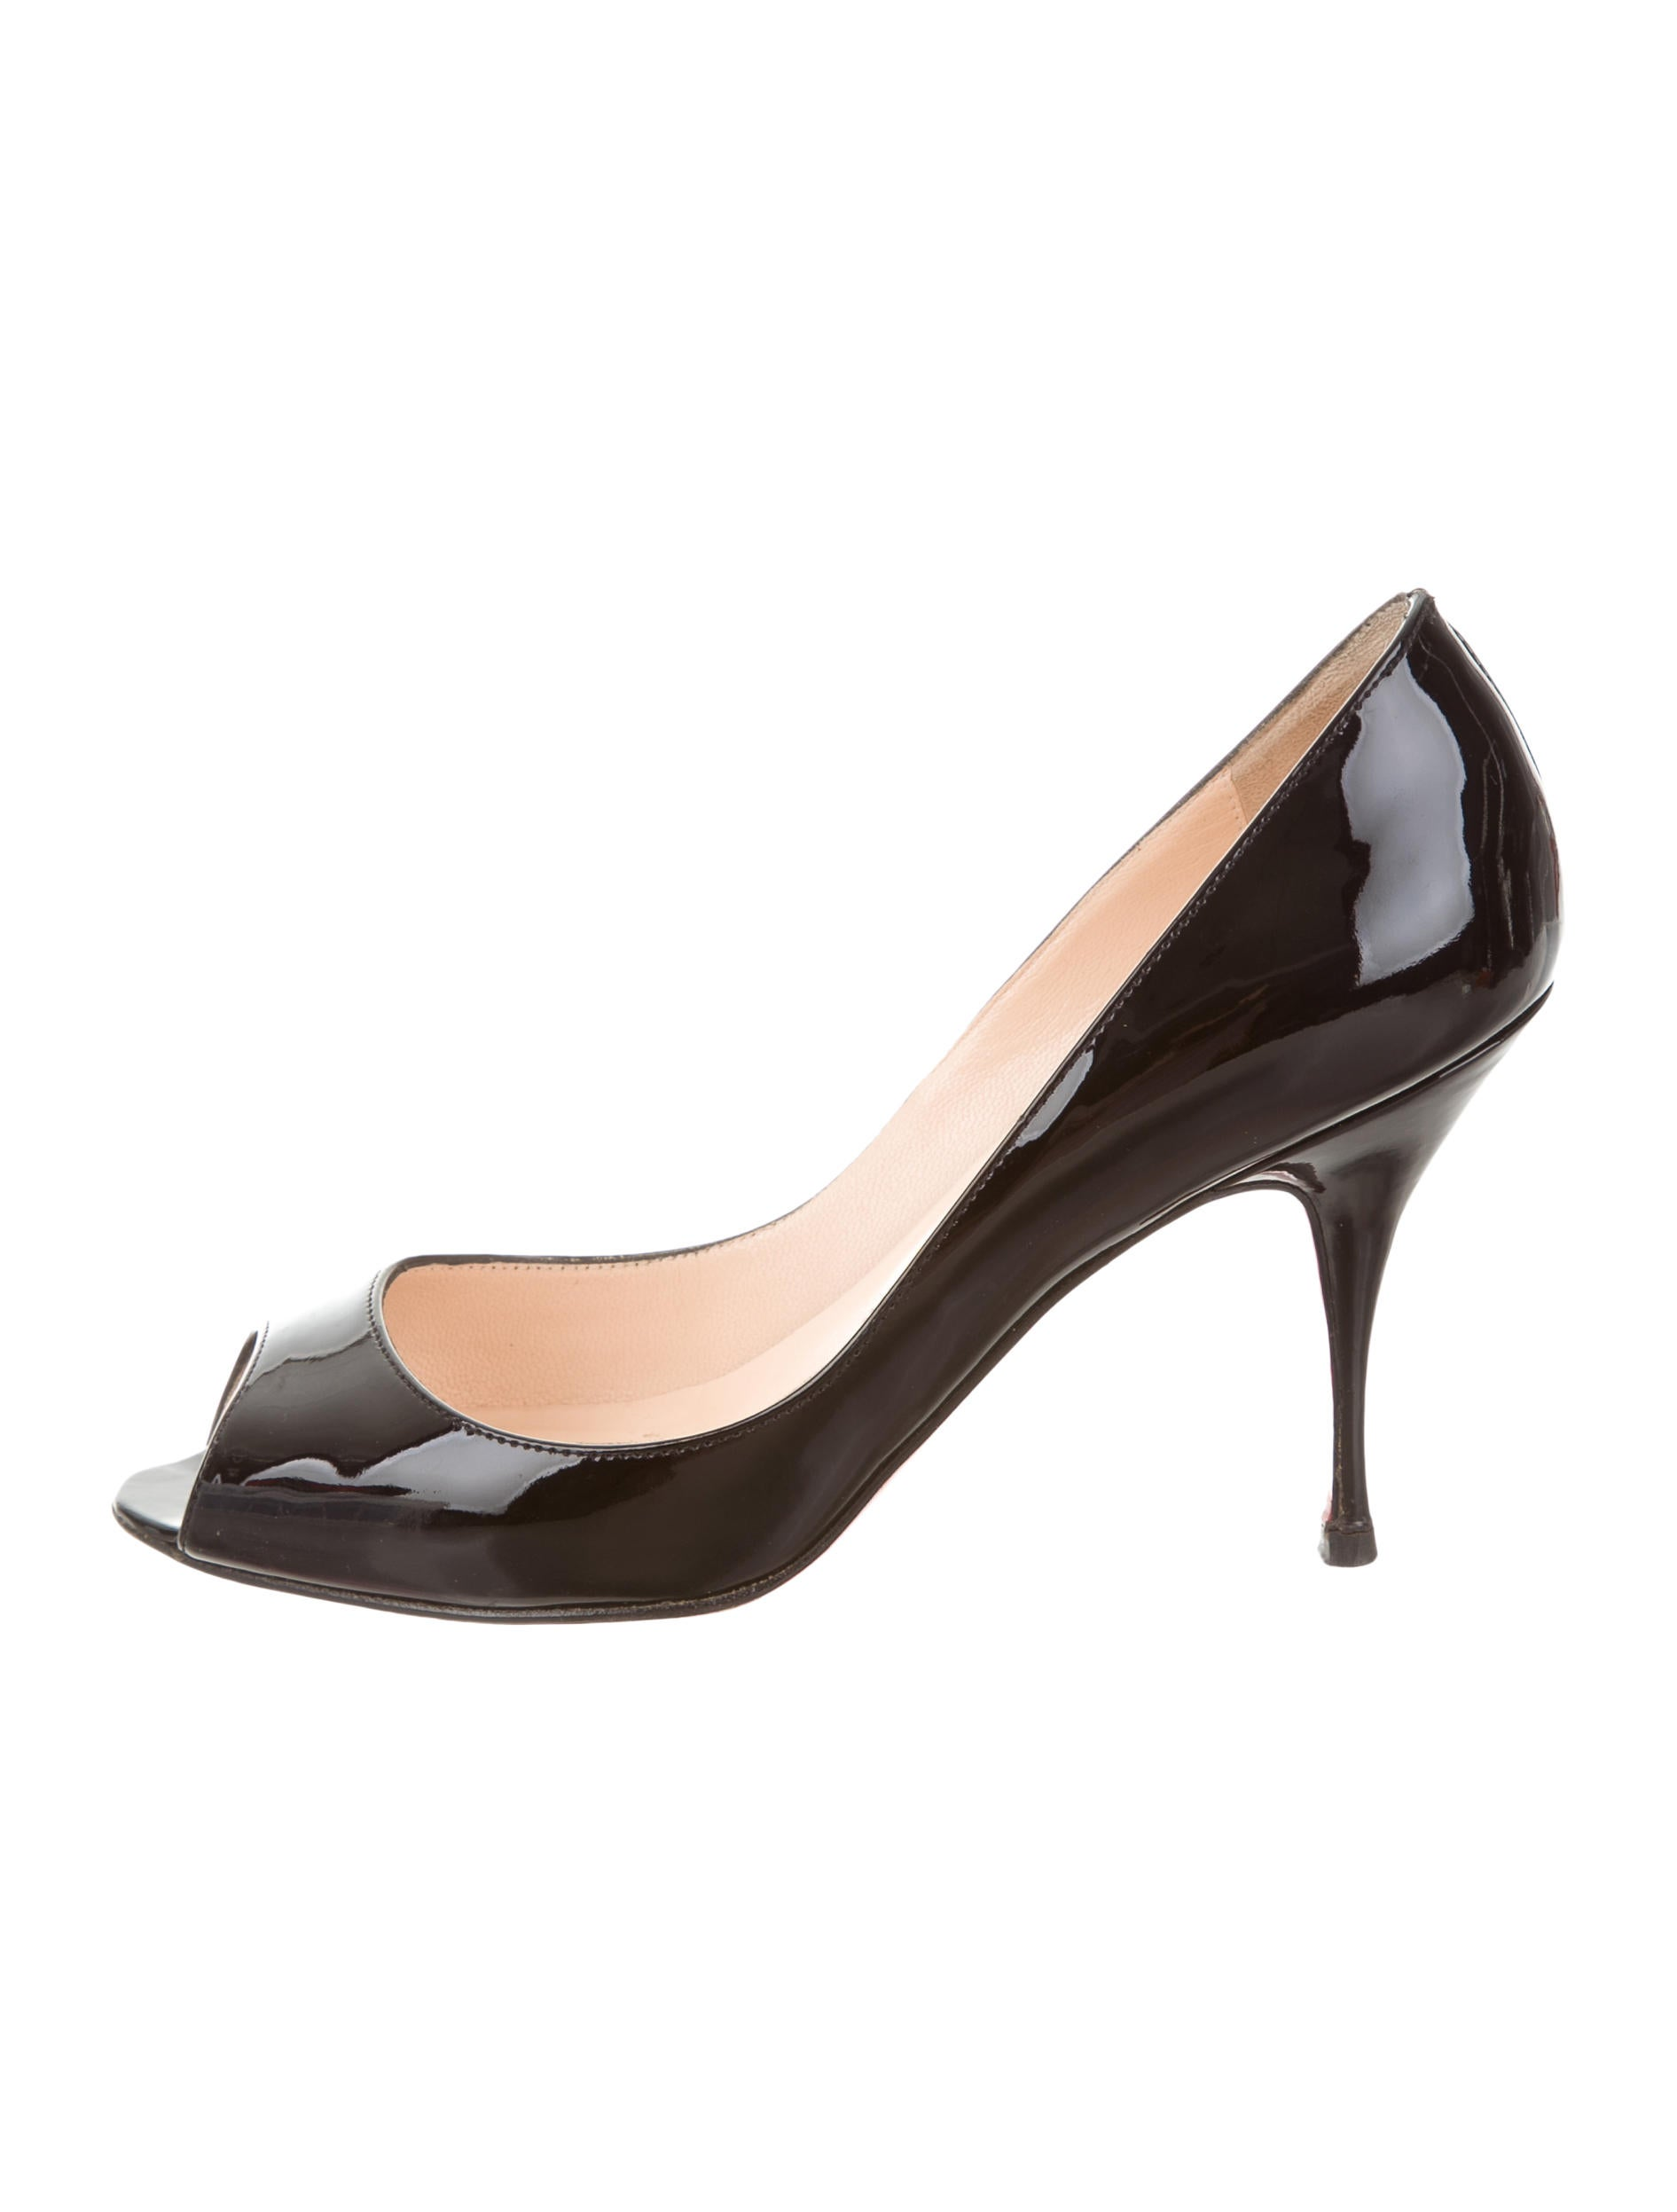 fc72718f29 Christian Louboutin Patent Leather Yootish 85 Pumps - Shoes ...